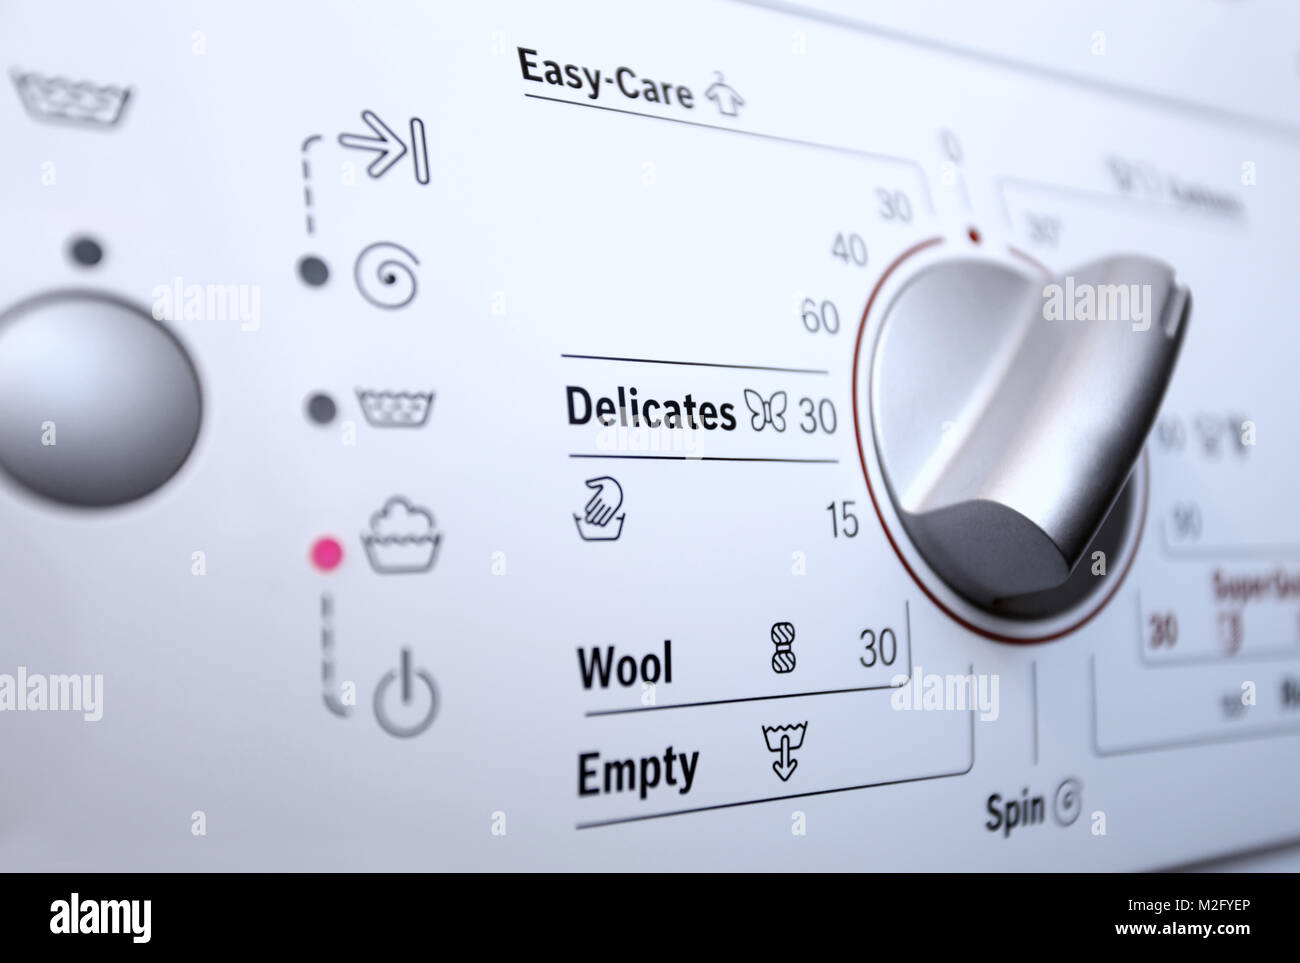 Washing machine dial stock photos washing machine dial stock close up view of washing machine control panel stock image buycottarizona Choice Image